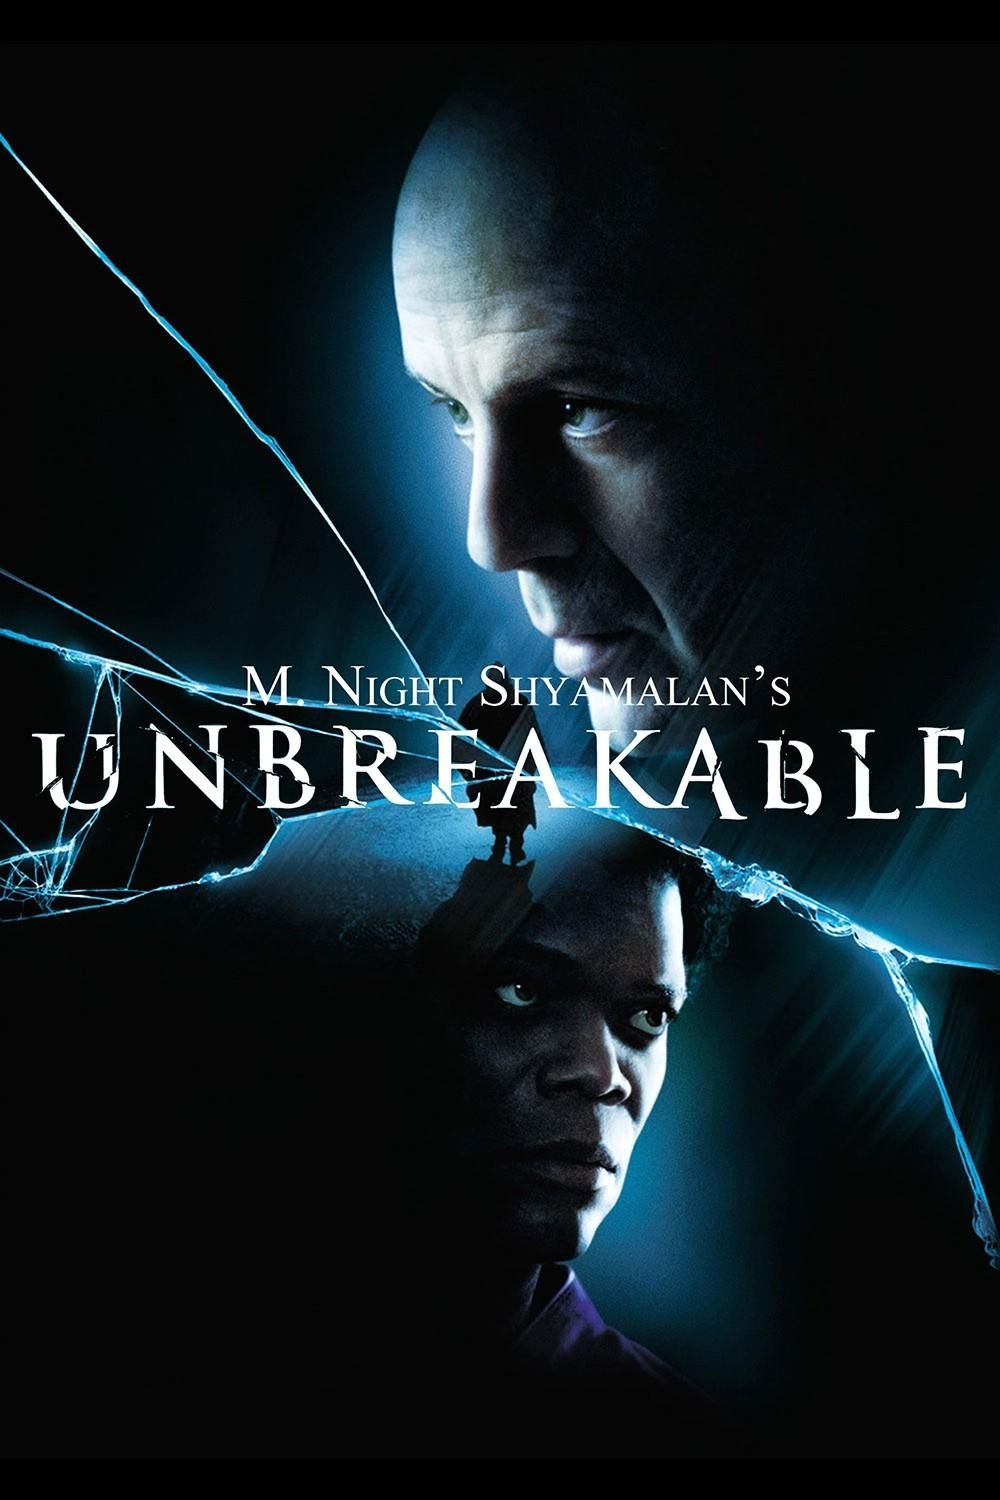 Unbreakable 2000 Streaming Movies Free Streaming Movies Full Movies Online Free